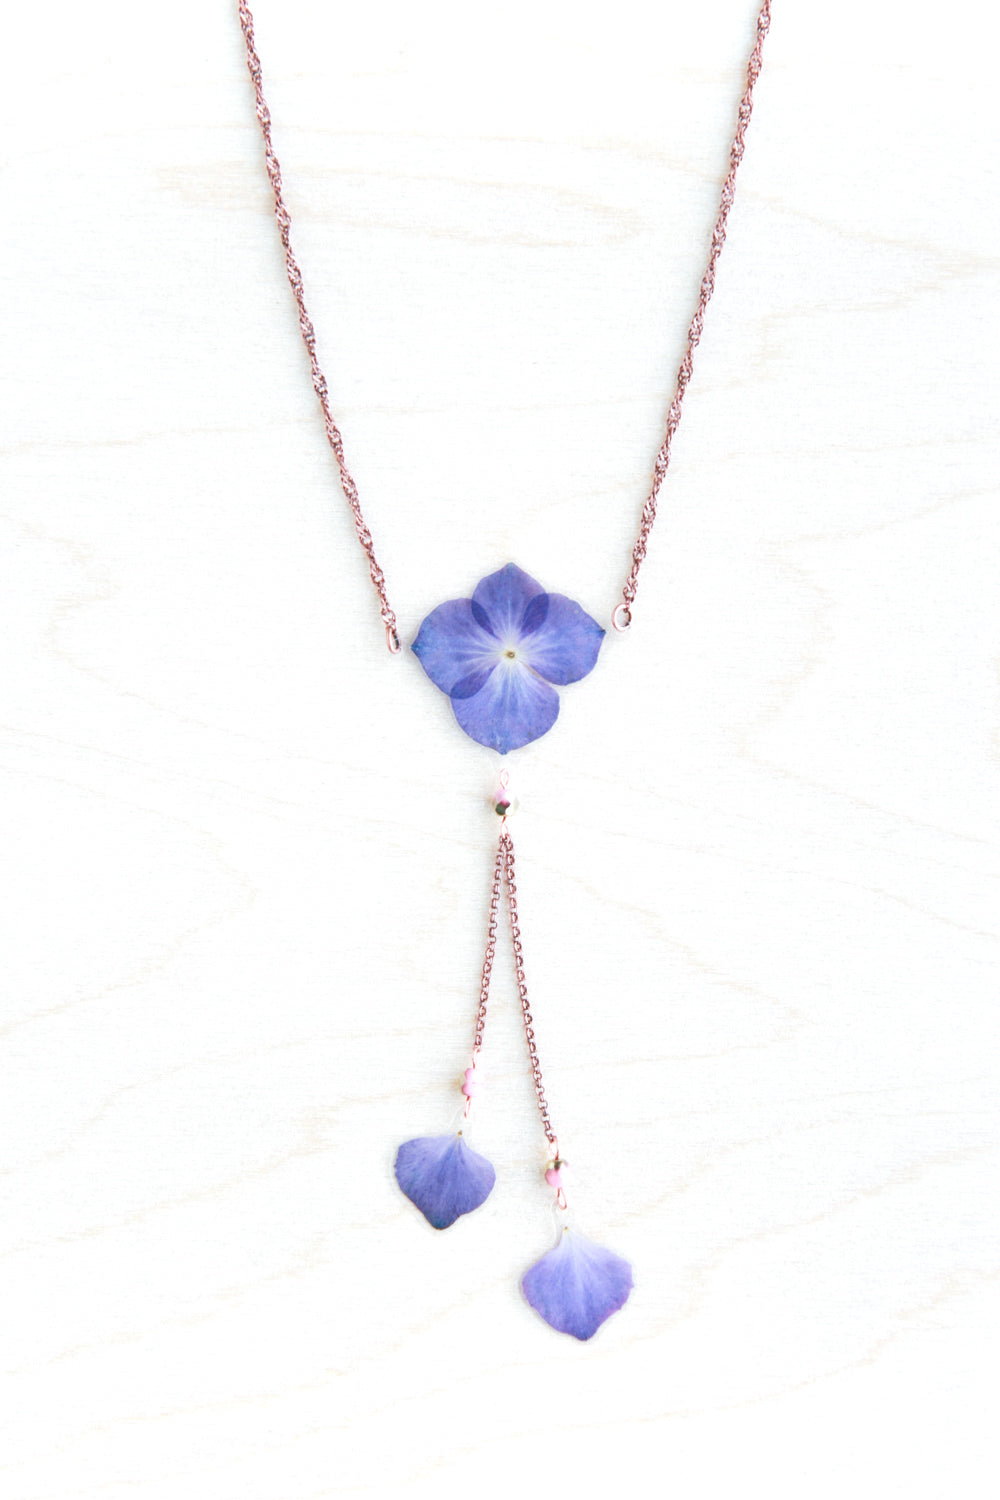 Purple Hydrangea Flower Lariat Necklace with Pink Beads